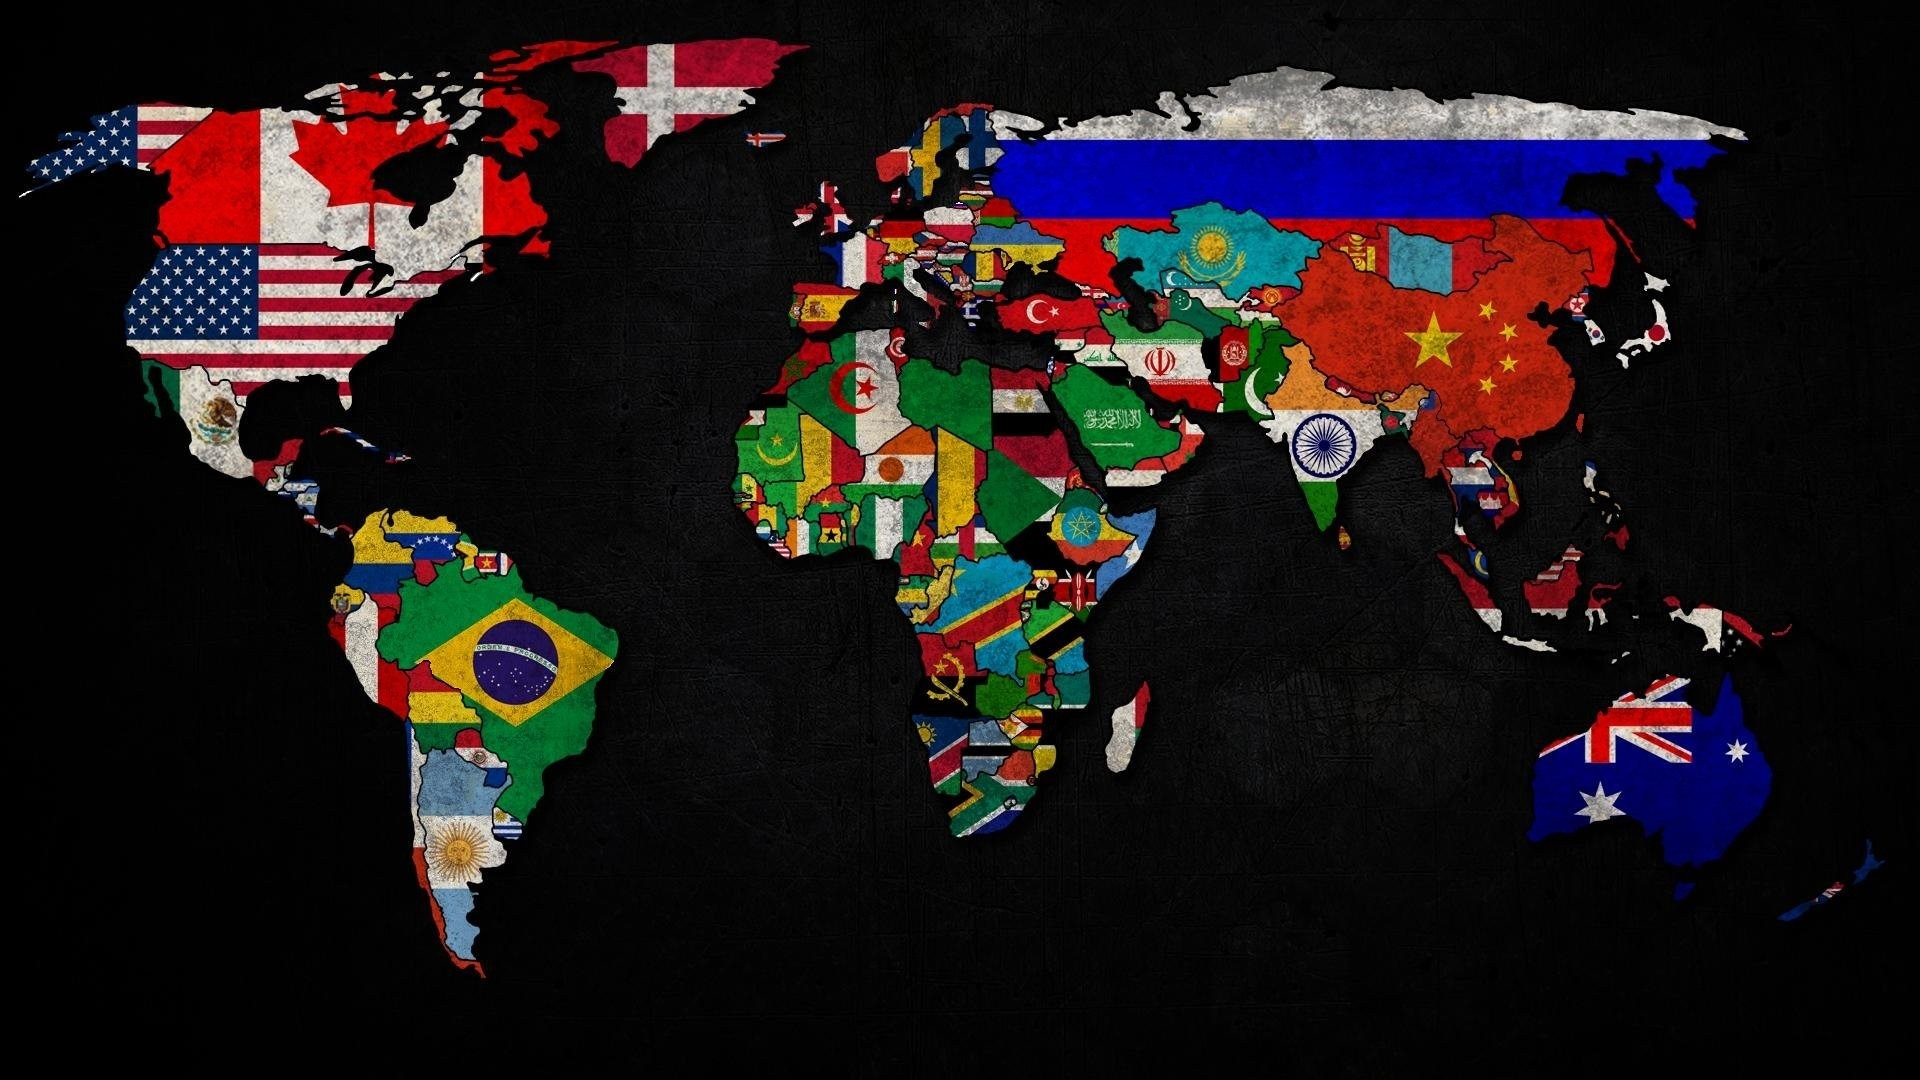 Cia world map wallpaper topsimages cia wallpapers for windows background pictures jpg 1920x1080 cia world map wallpaper gumiabroncs Gallery